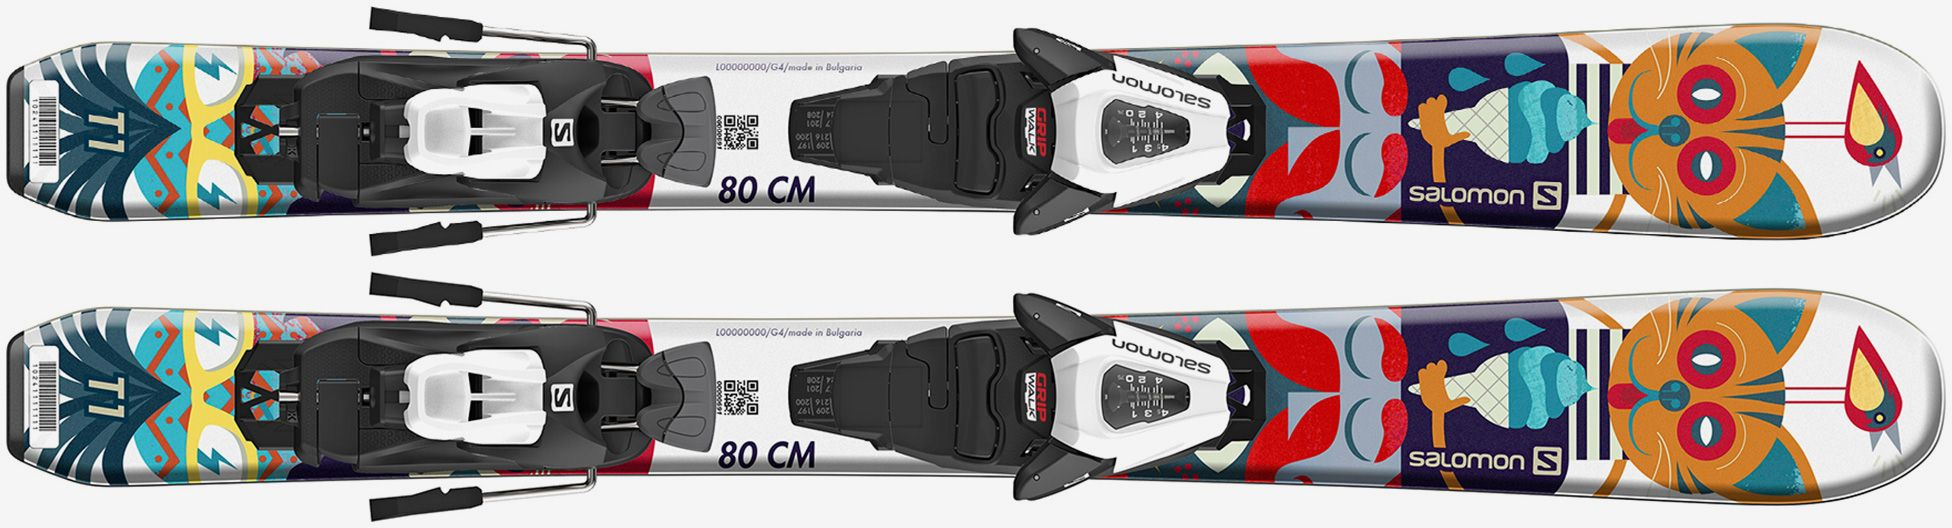 SALOMON T1 JR XS AND C5 2021